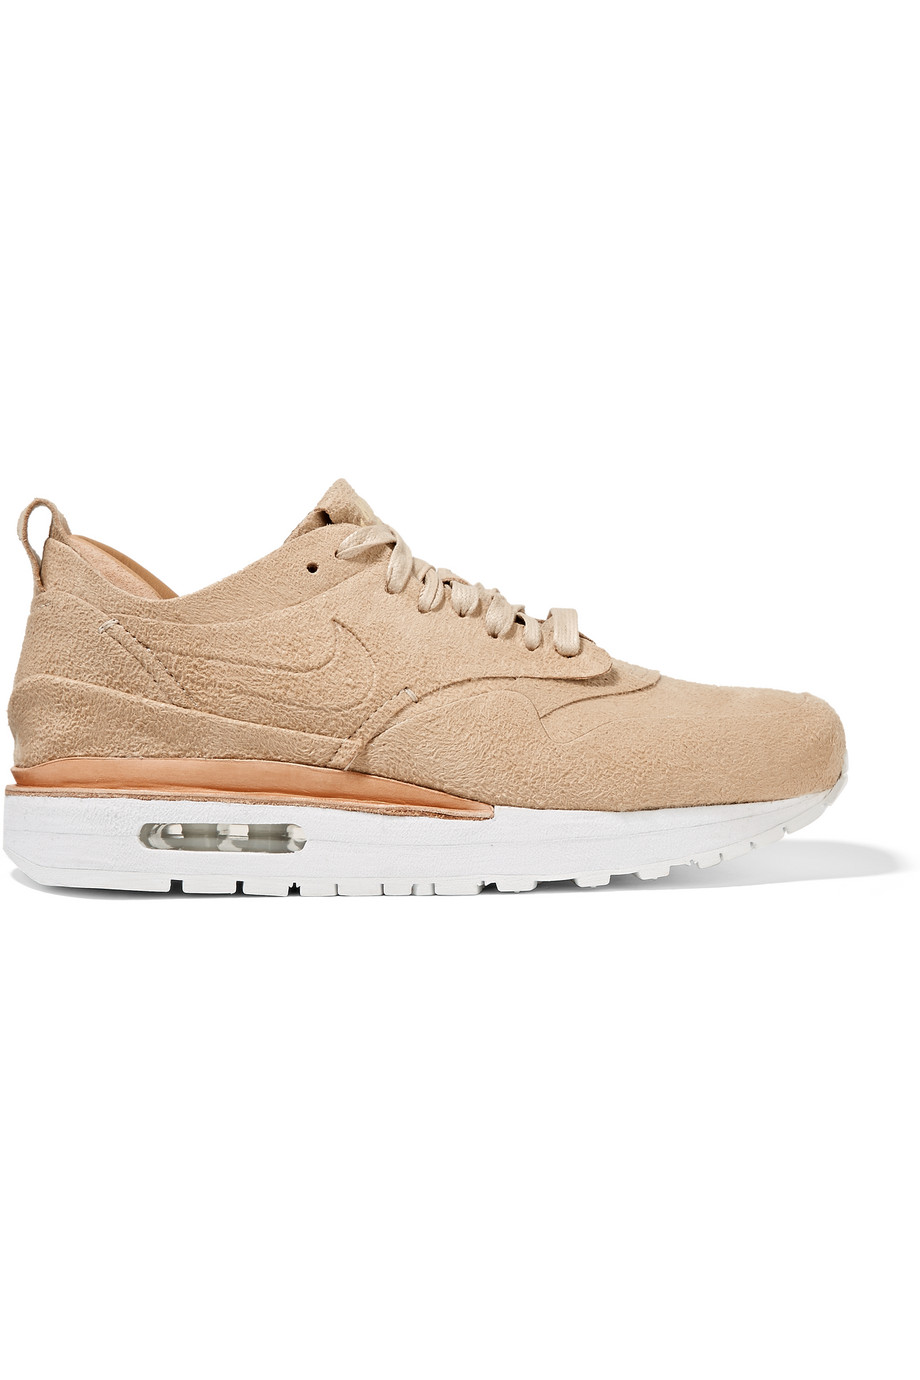 Nike Nikelab Air Max 1 Royal Faux Suede and Leather Sneakers, Beige, Women's, Size: 5.5